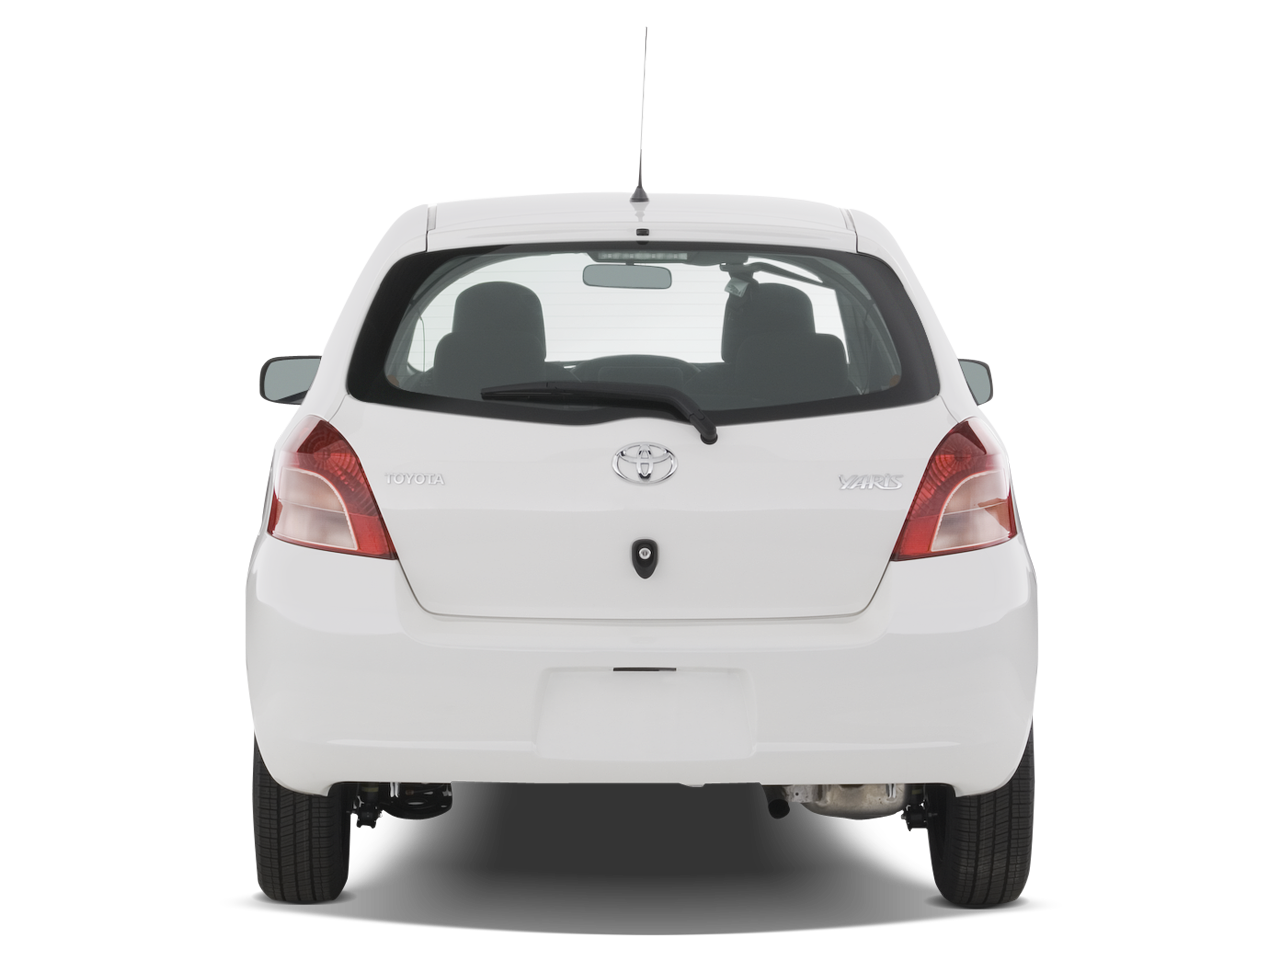 2008 Toyota Yaris - Toyota Subcompact Hatchback Review ...